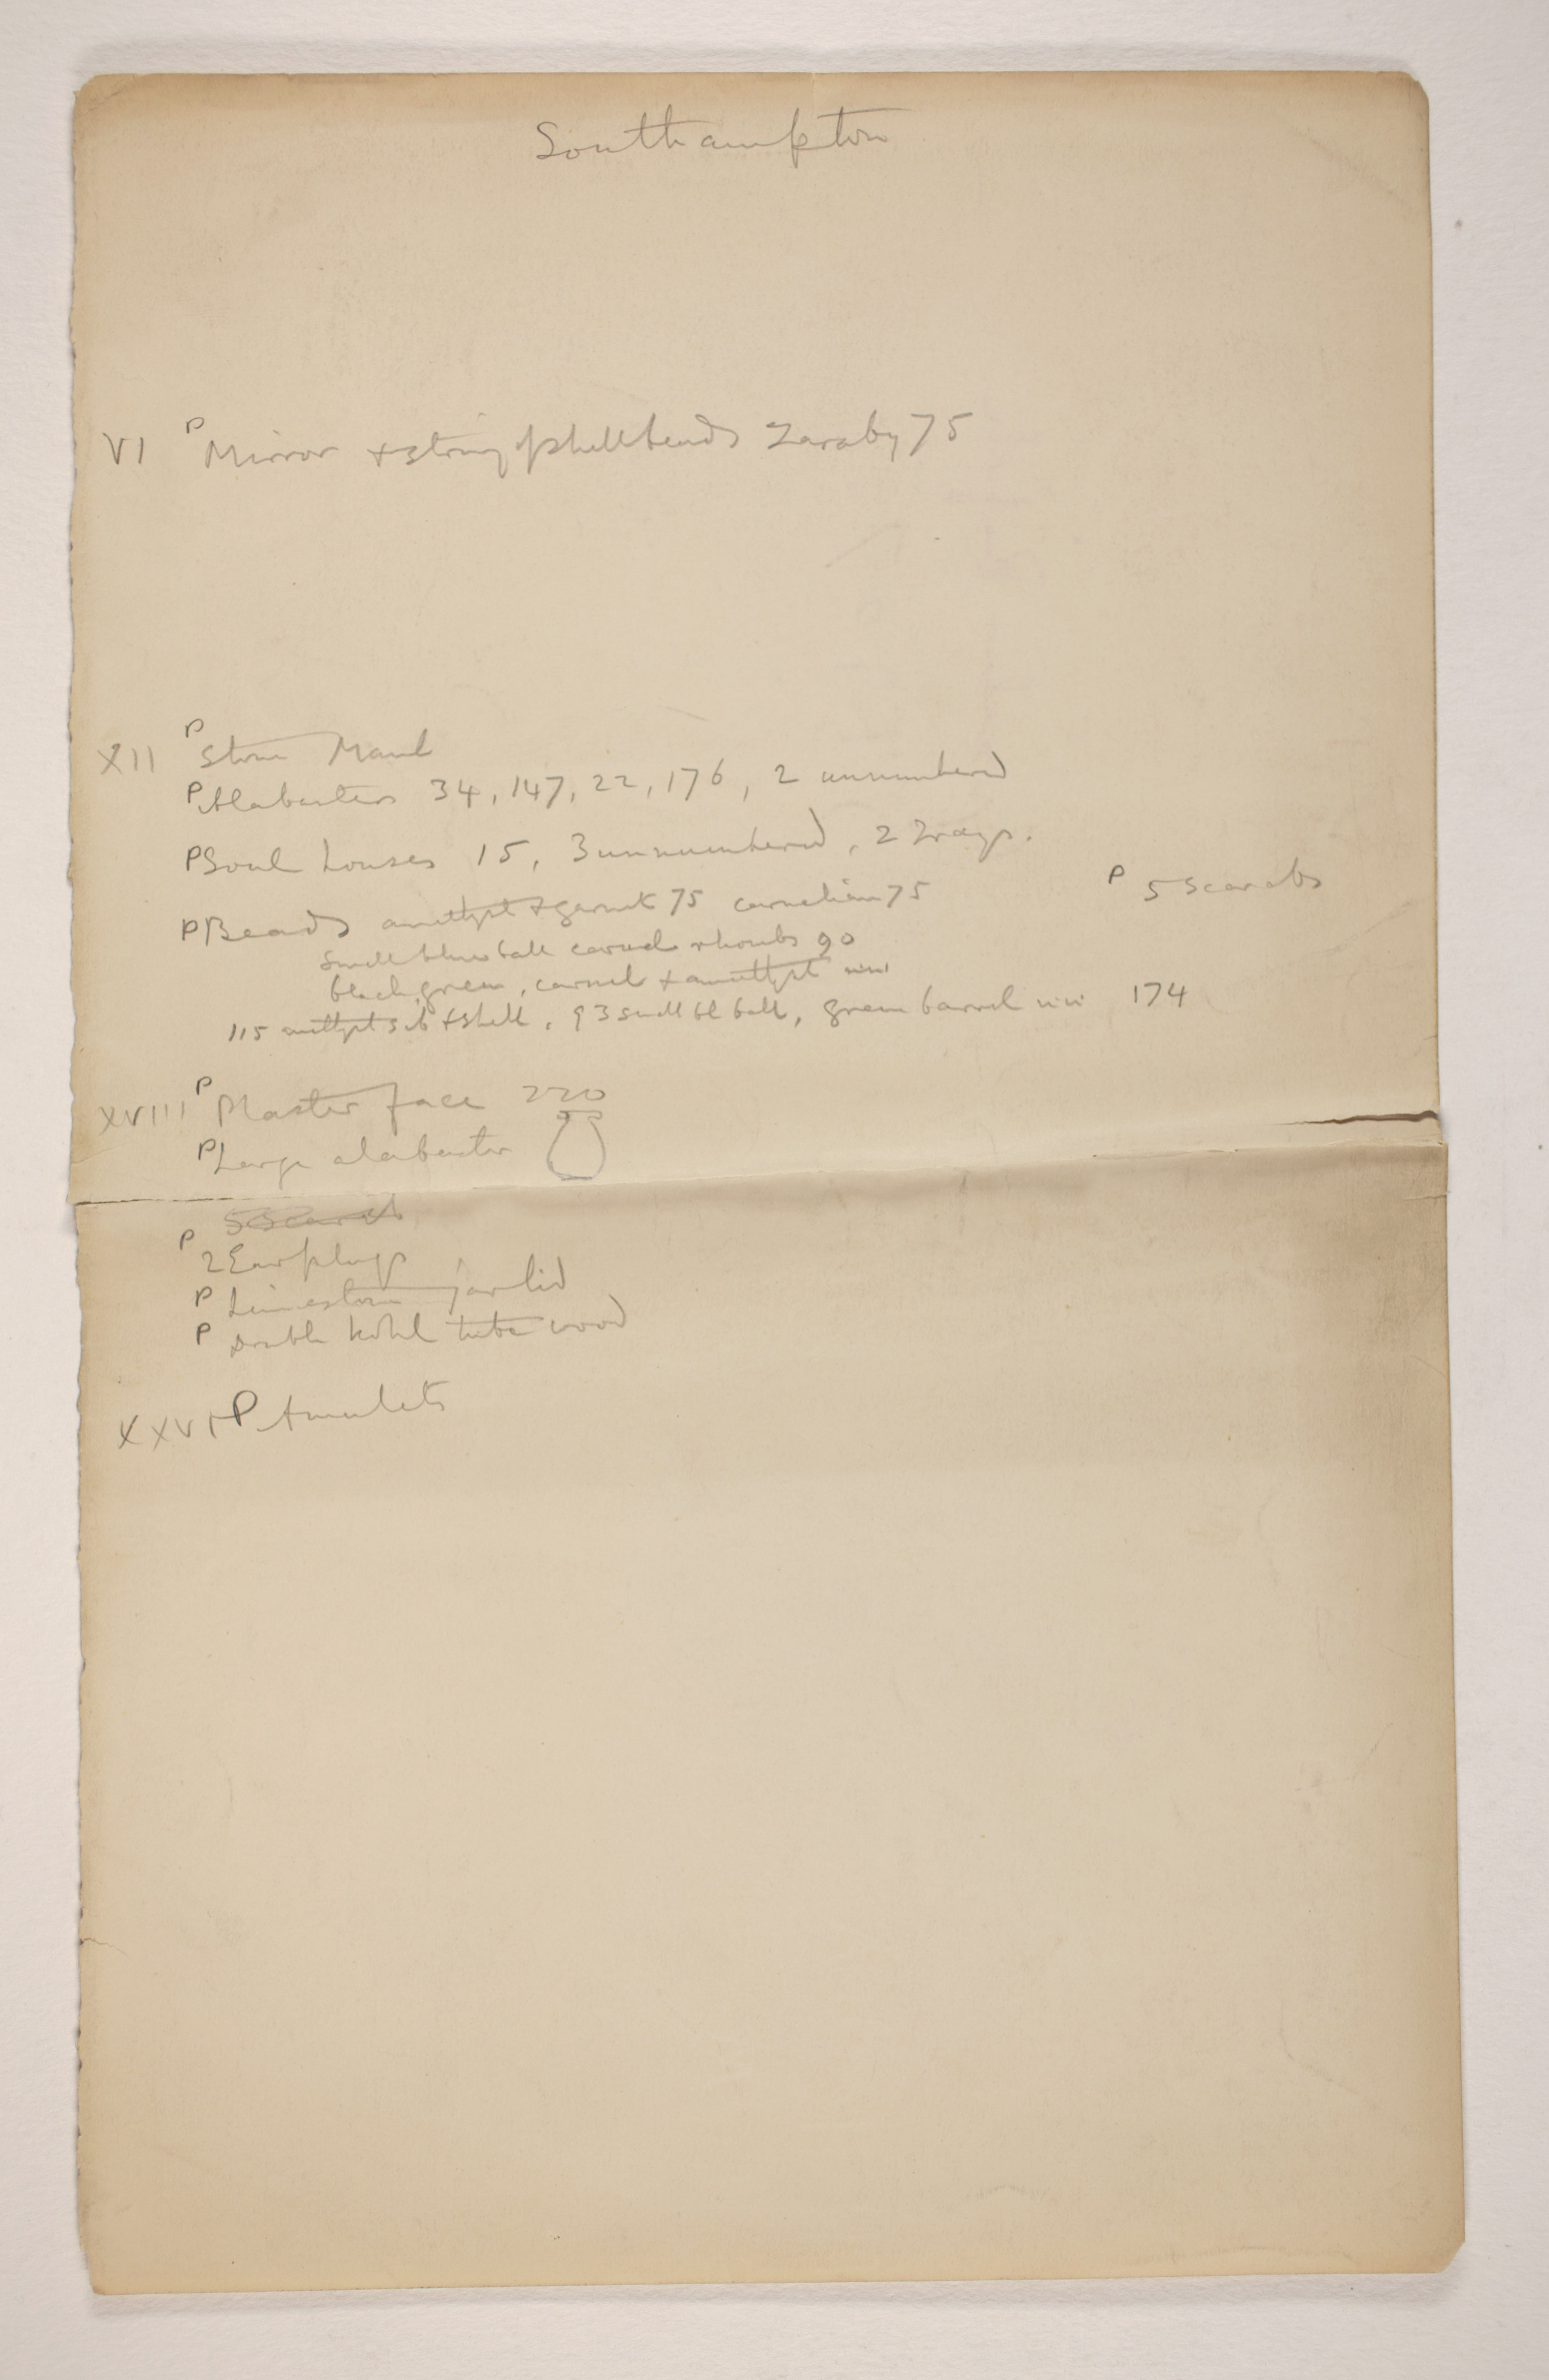 1906-07 Giza and Deir Rifeh Individual institution list  PMA/WFP1/D/15/15.1